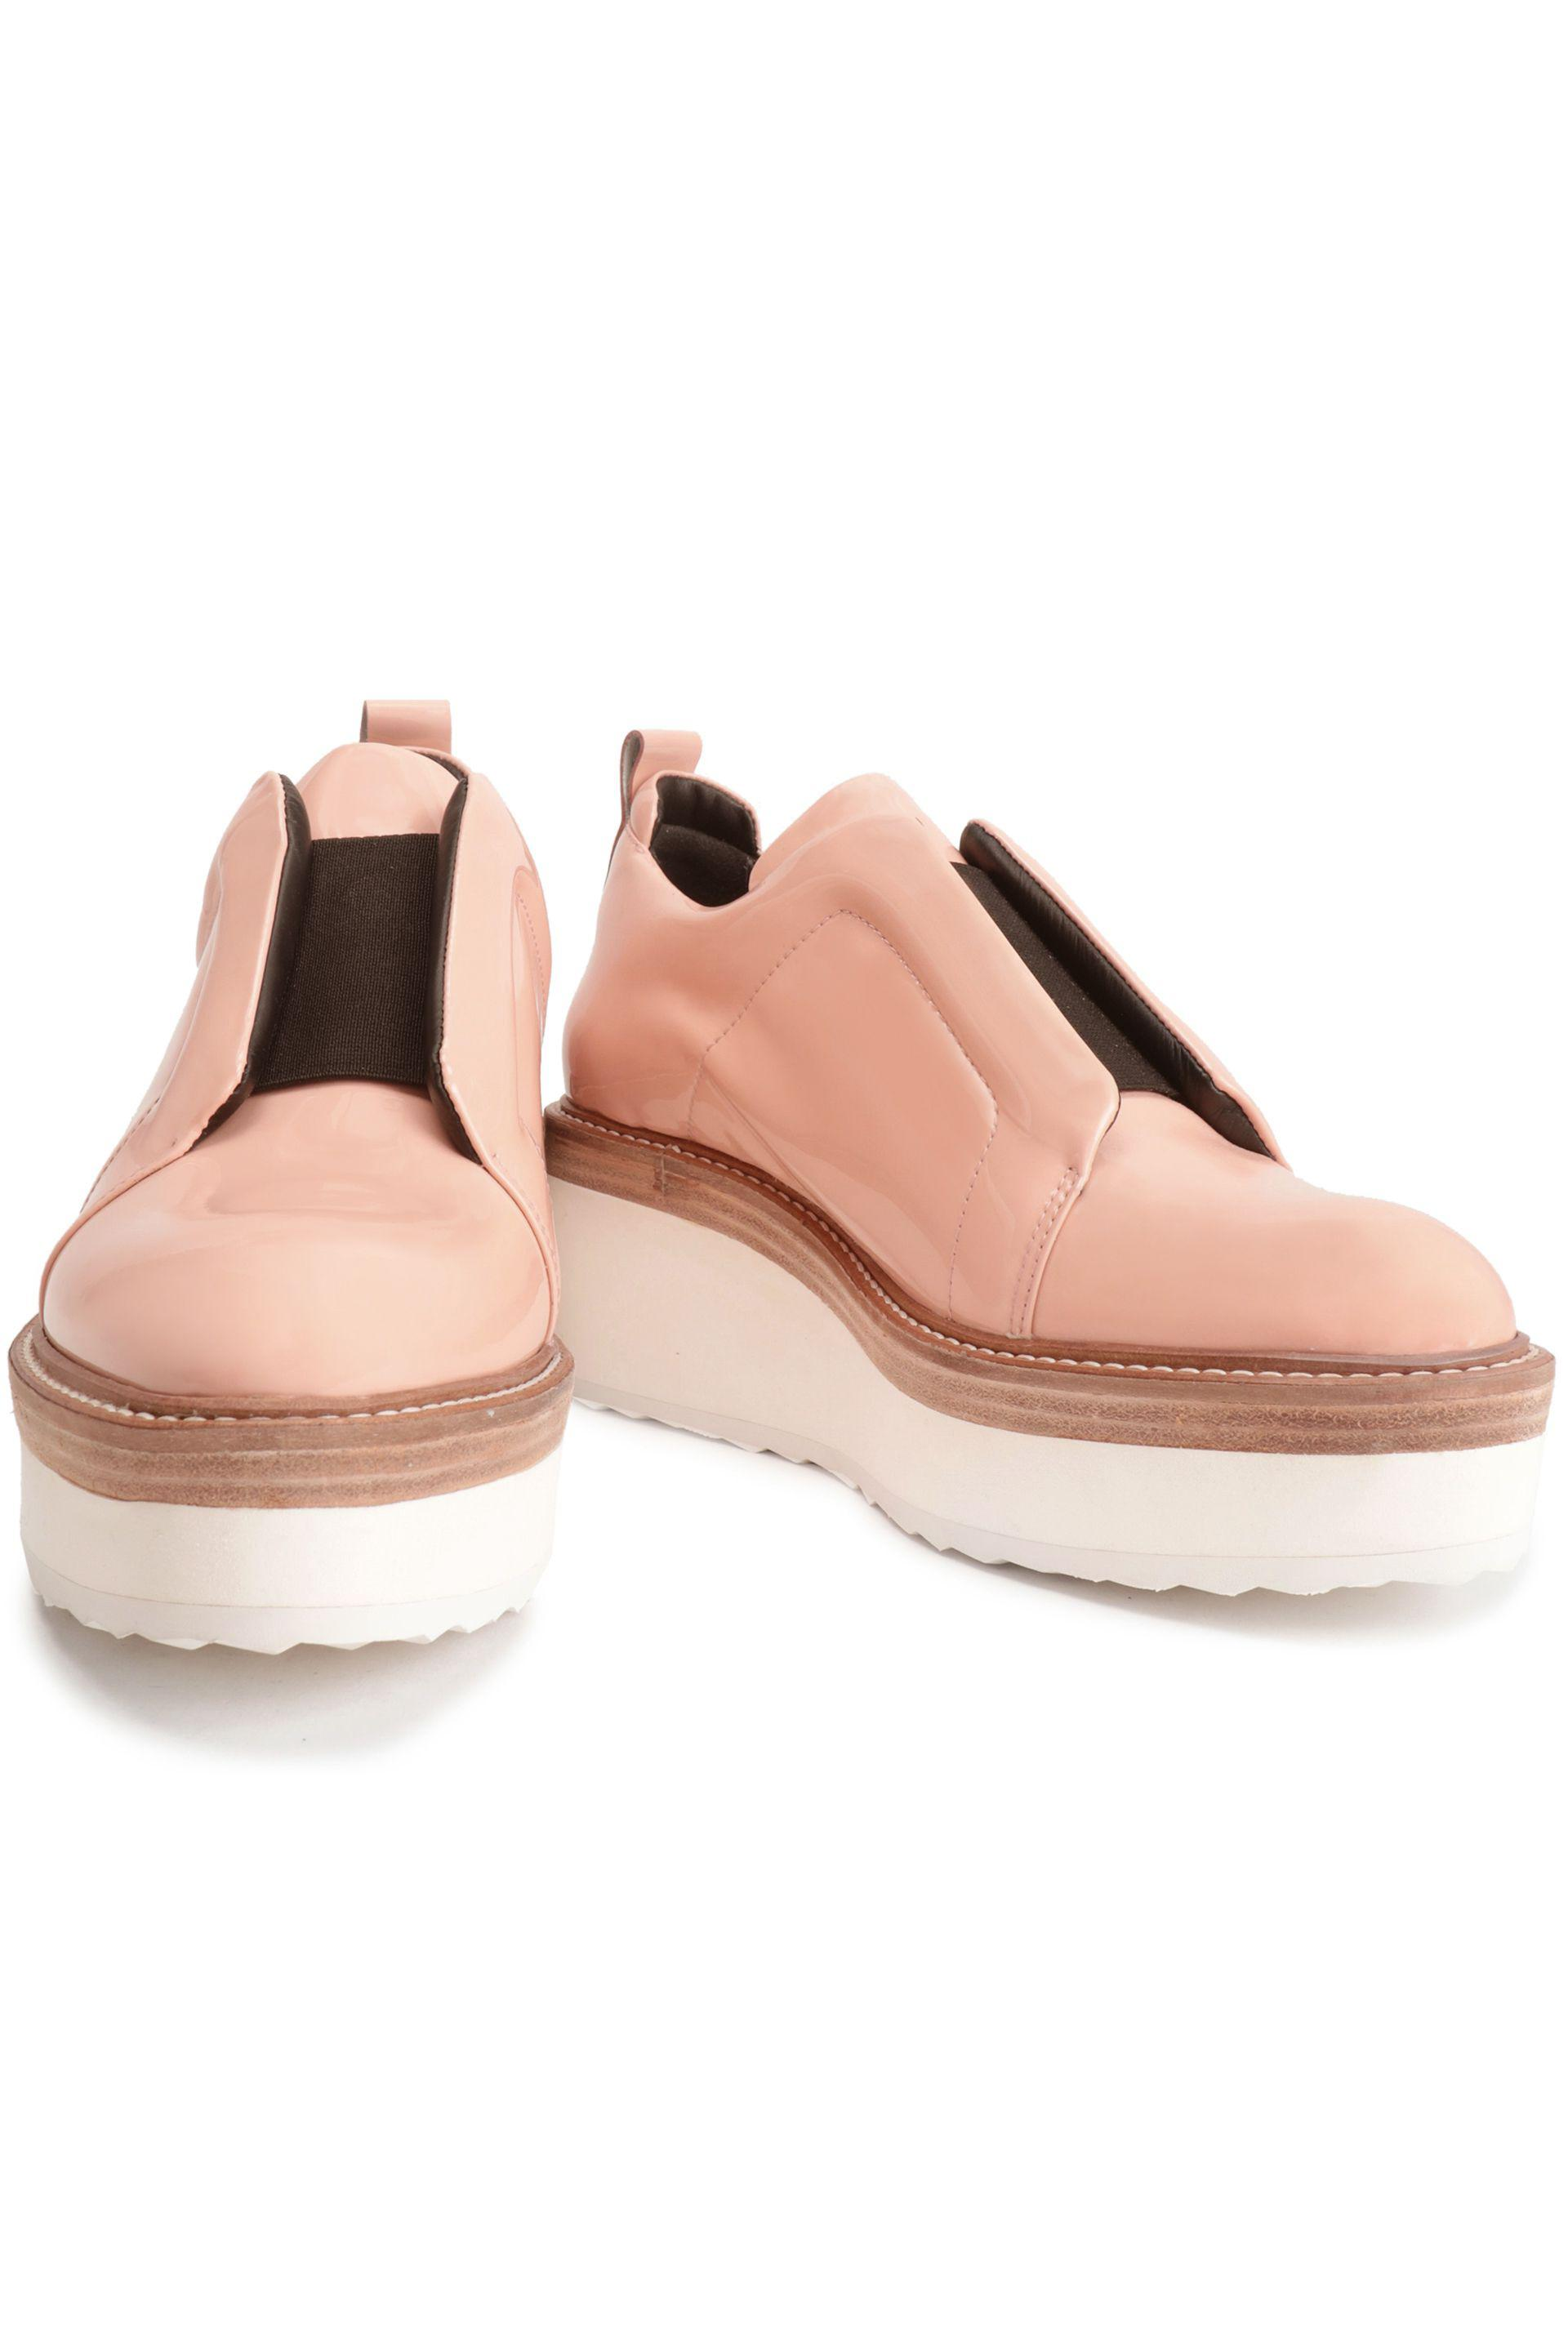 Authentic For Sale Pierre Hardy Woman Two-tone Patent Leather Sneakers Pink Size 35 Pierre Hardy Discount Brand New Unisex Purchase Sale Online XkPRb